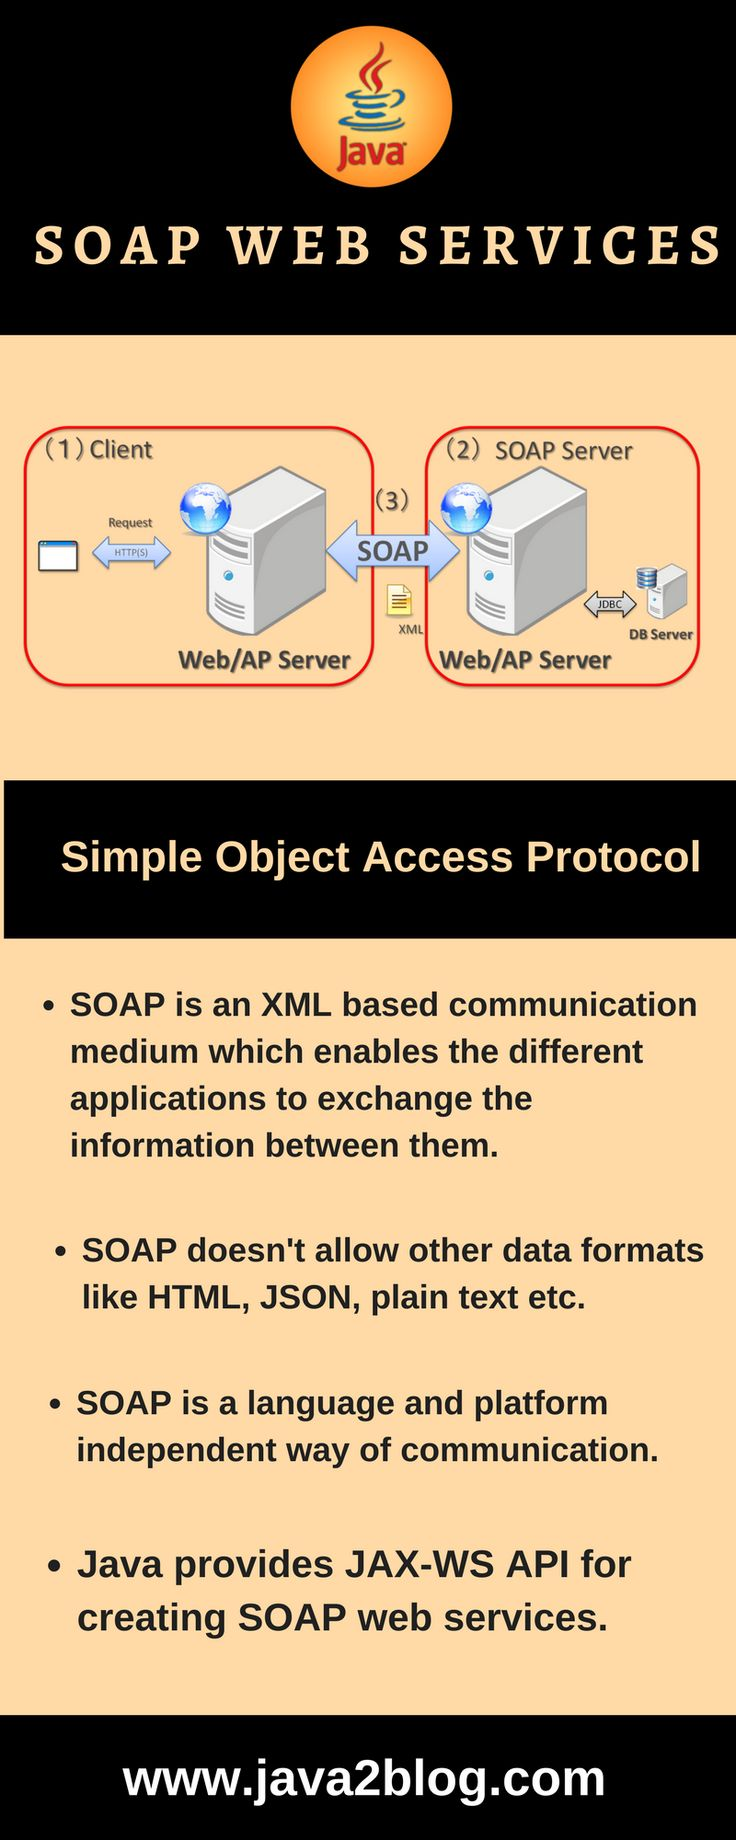 9 best java infographics images on pinterest info graphics web service tutorial content soap web service example in java using eclipse step by step tutorial jax ws web service eclipse tutorial jax ws web service baditri Images